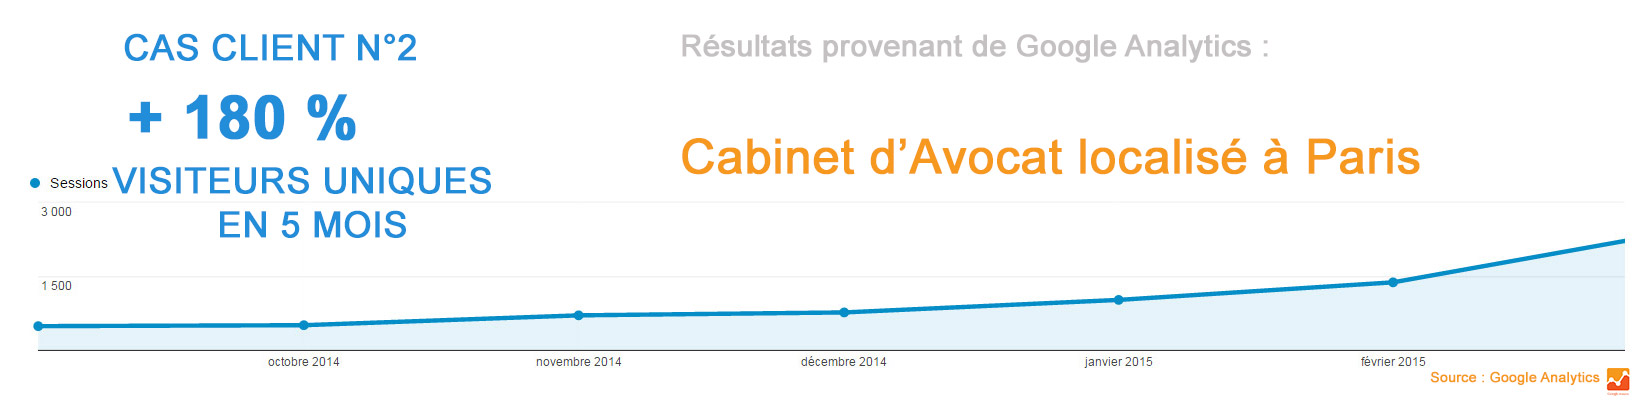 courbe google analytics referencement cabinet avocat droit de l'iimmobilier